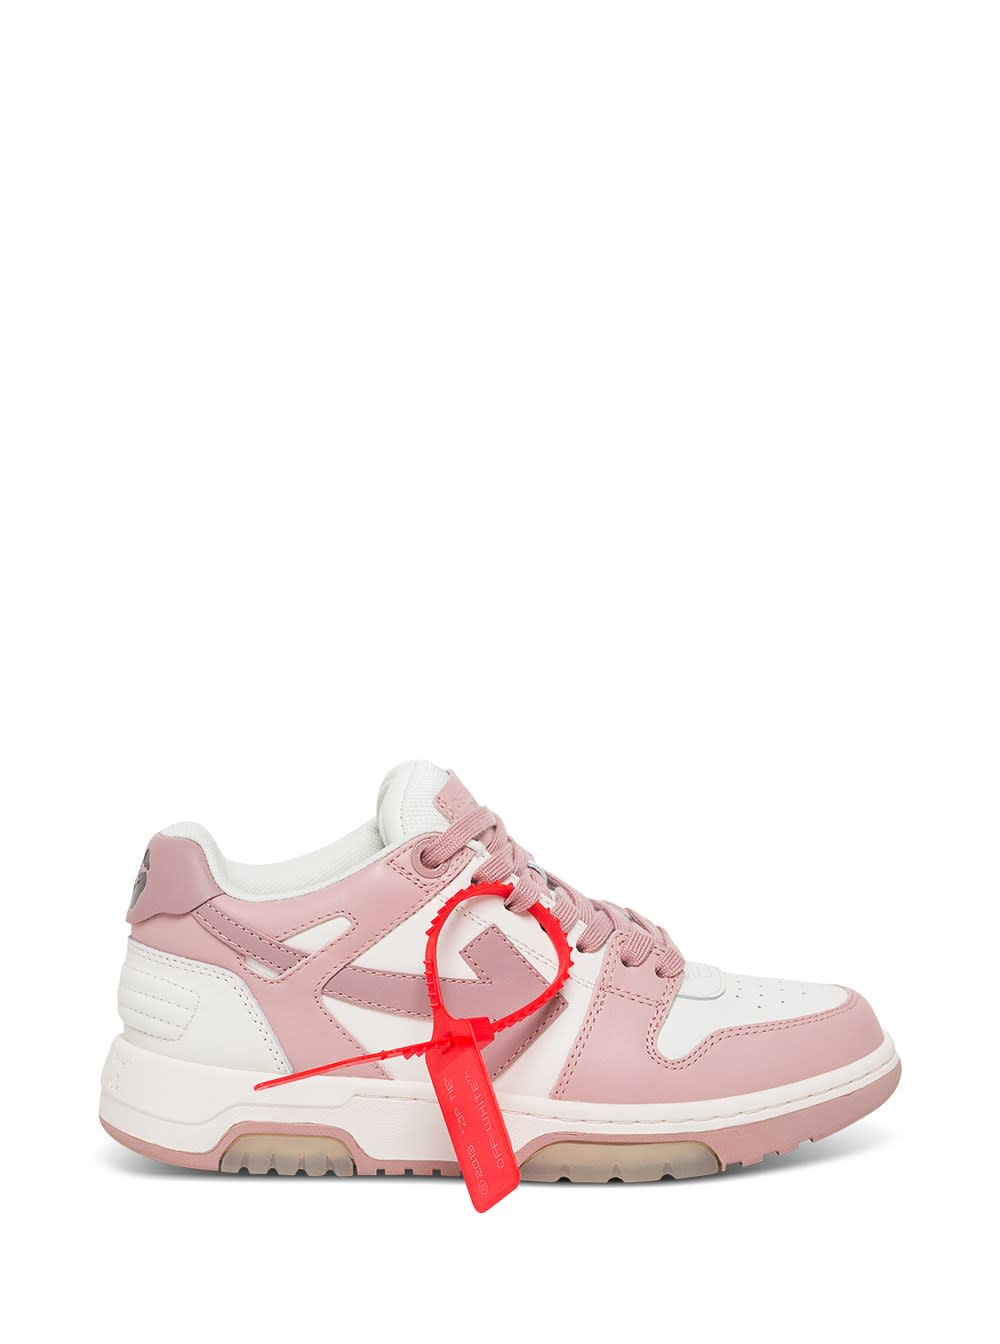 Off-White Sneakers OOO SNEAKERS